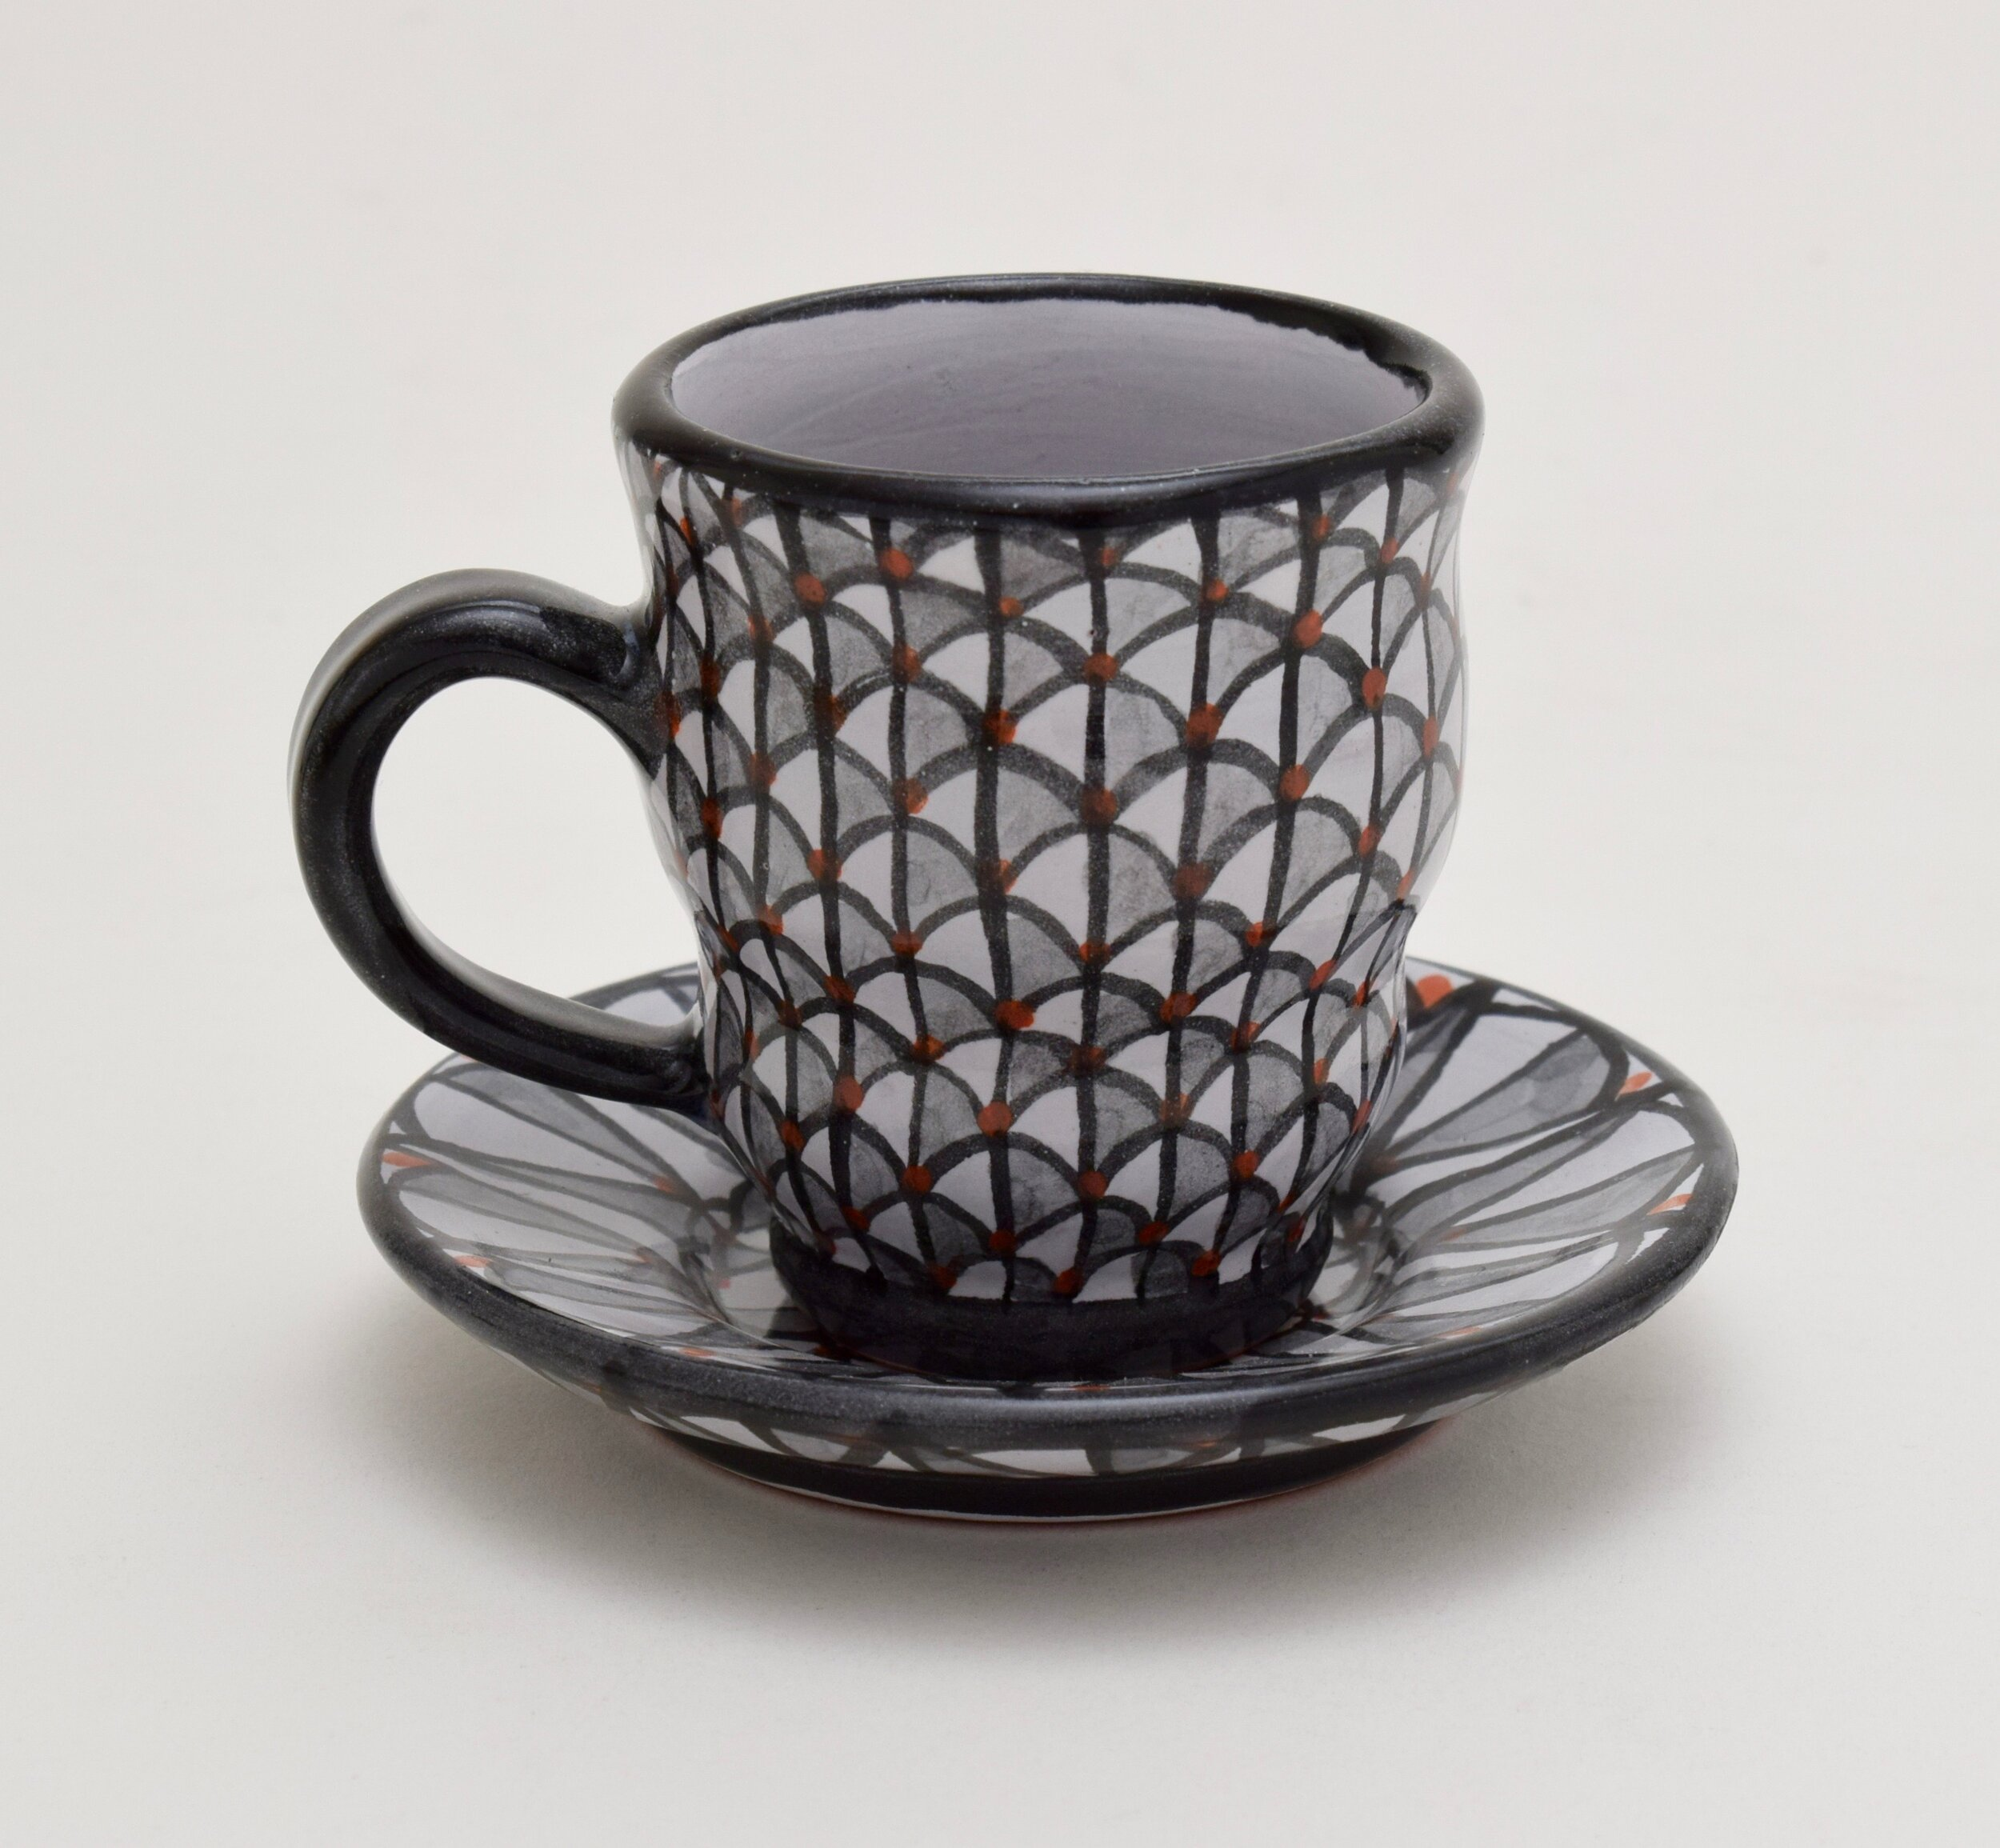 Black and White Scale Espresso Cup with Saucer.jpg